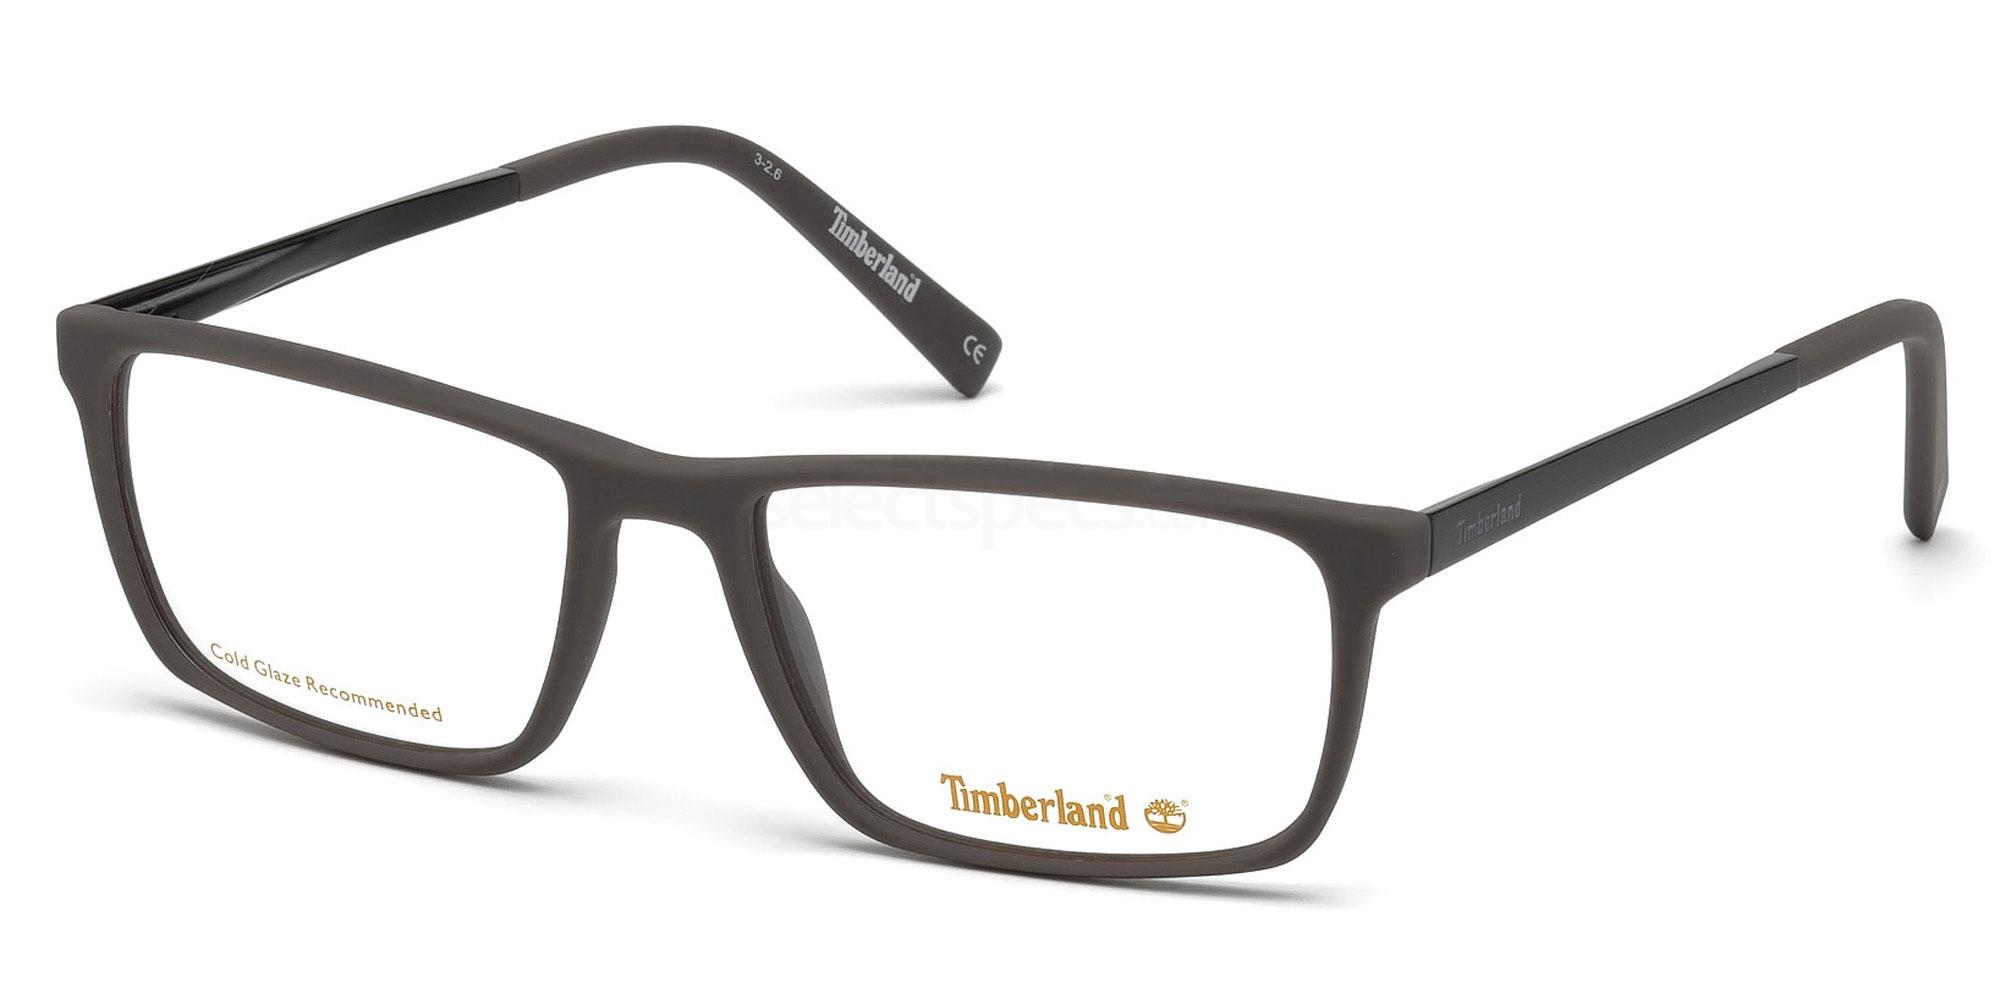 020 TB1562 Glasses, Timberland